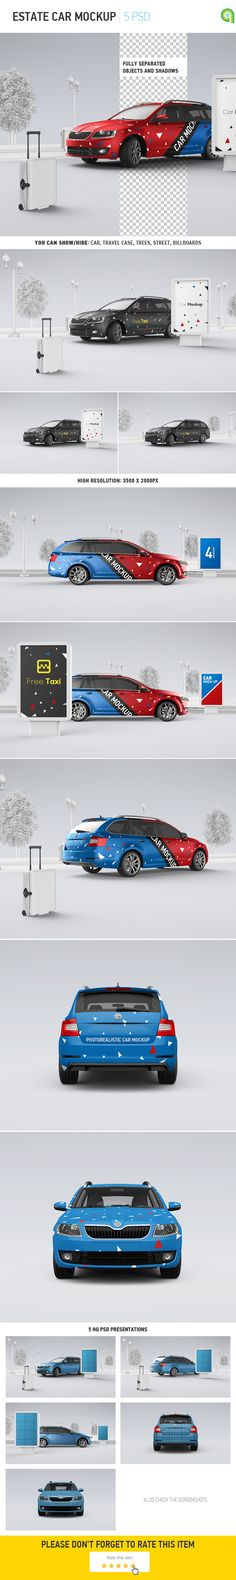 Car Mockup | Billboard Mock-up on Behance